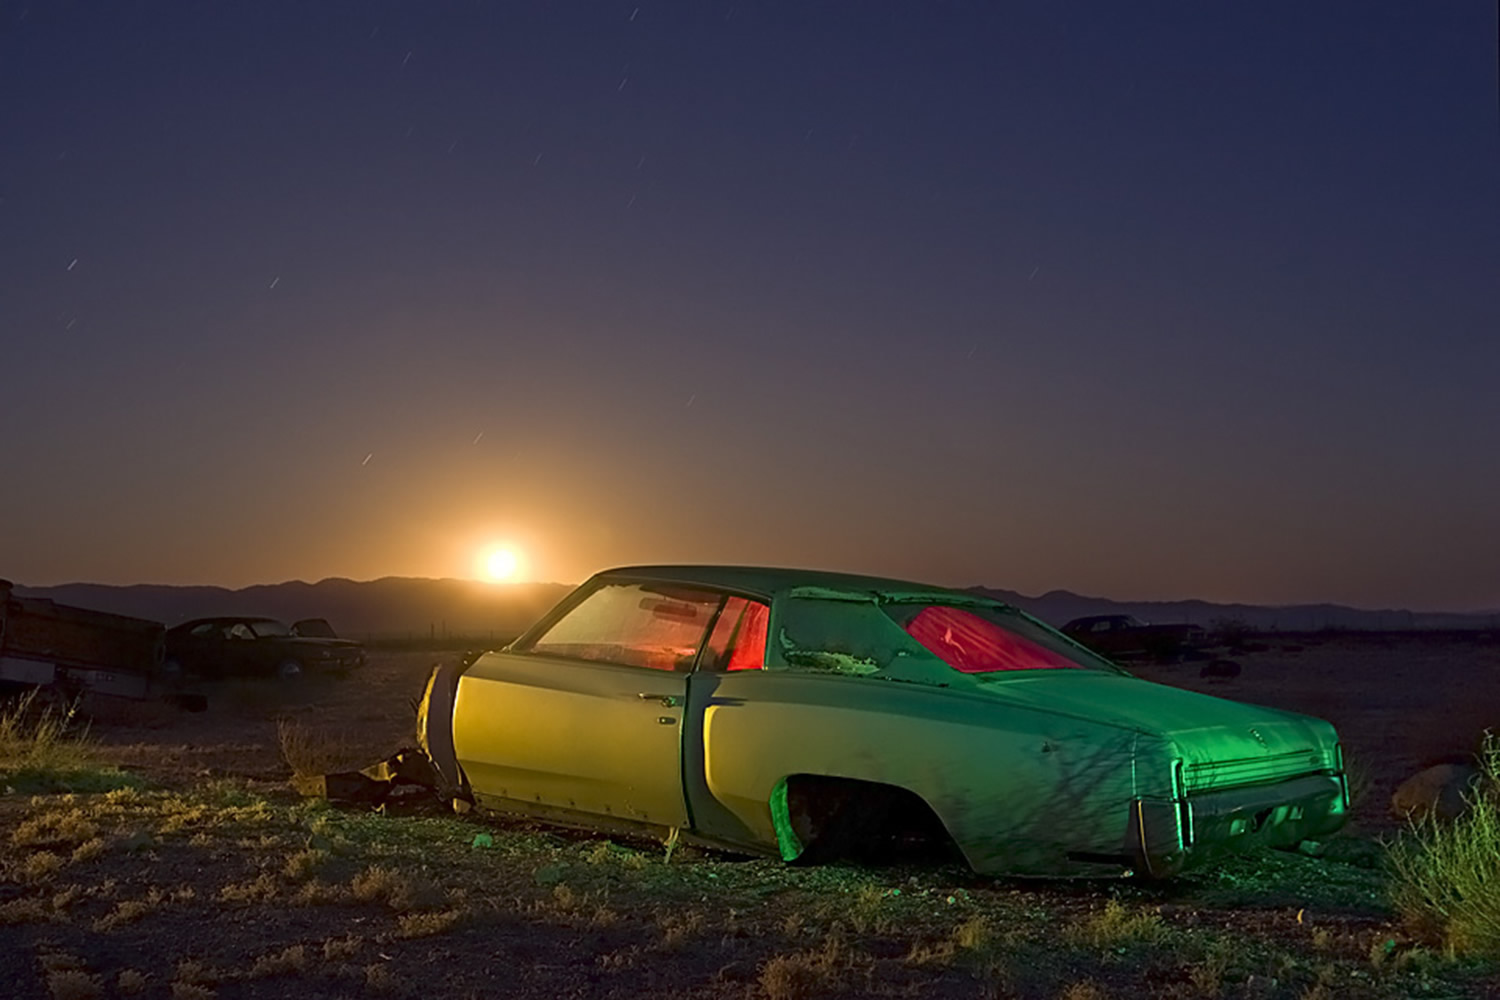 troy paiva night photography neon car